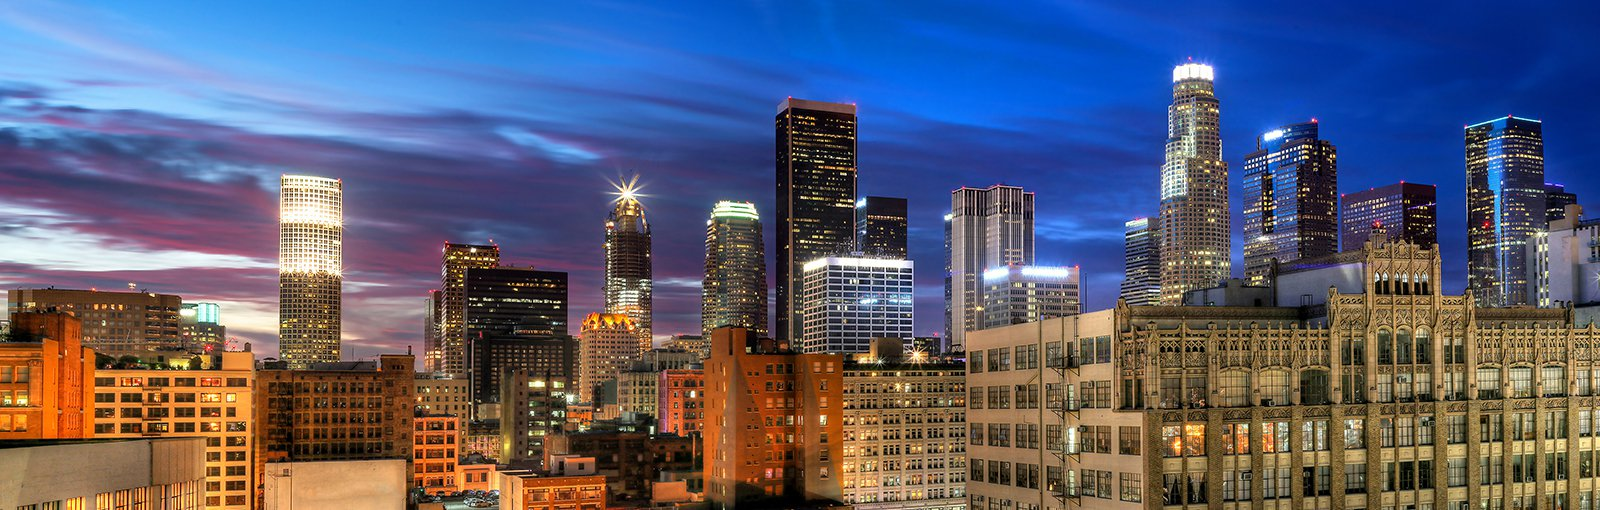 Los Angeles Data Centres & Colocation